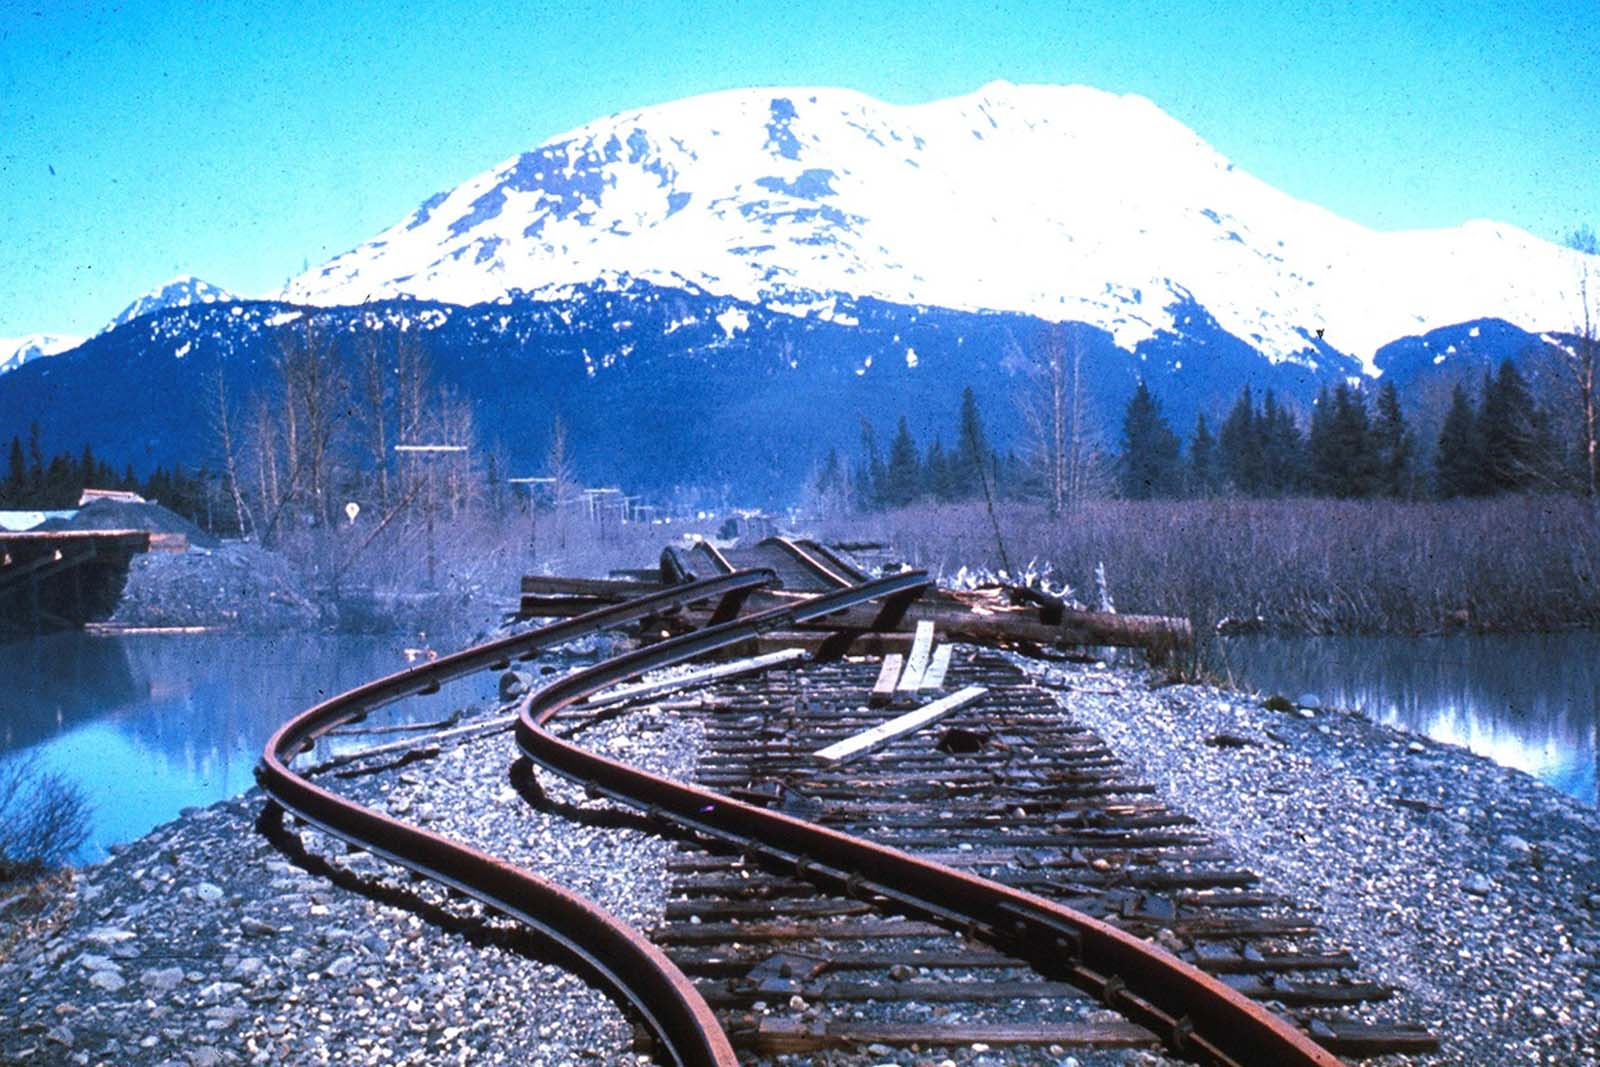 The rails in this approach to a railroad bridge near the head of Turnagain Arm, southeast of Anchorage, were torn from their ties and buckled laterally by movement of the riverbanks during a massive earthquake on March 27, 1964. The bridge was also compressed and developed a hump from vertical buckling.